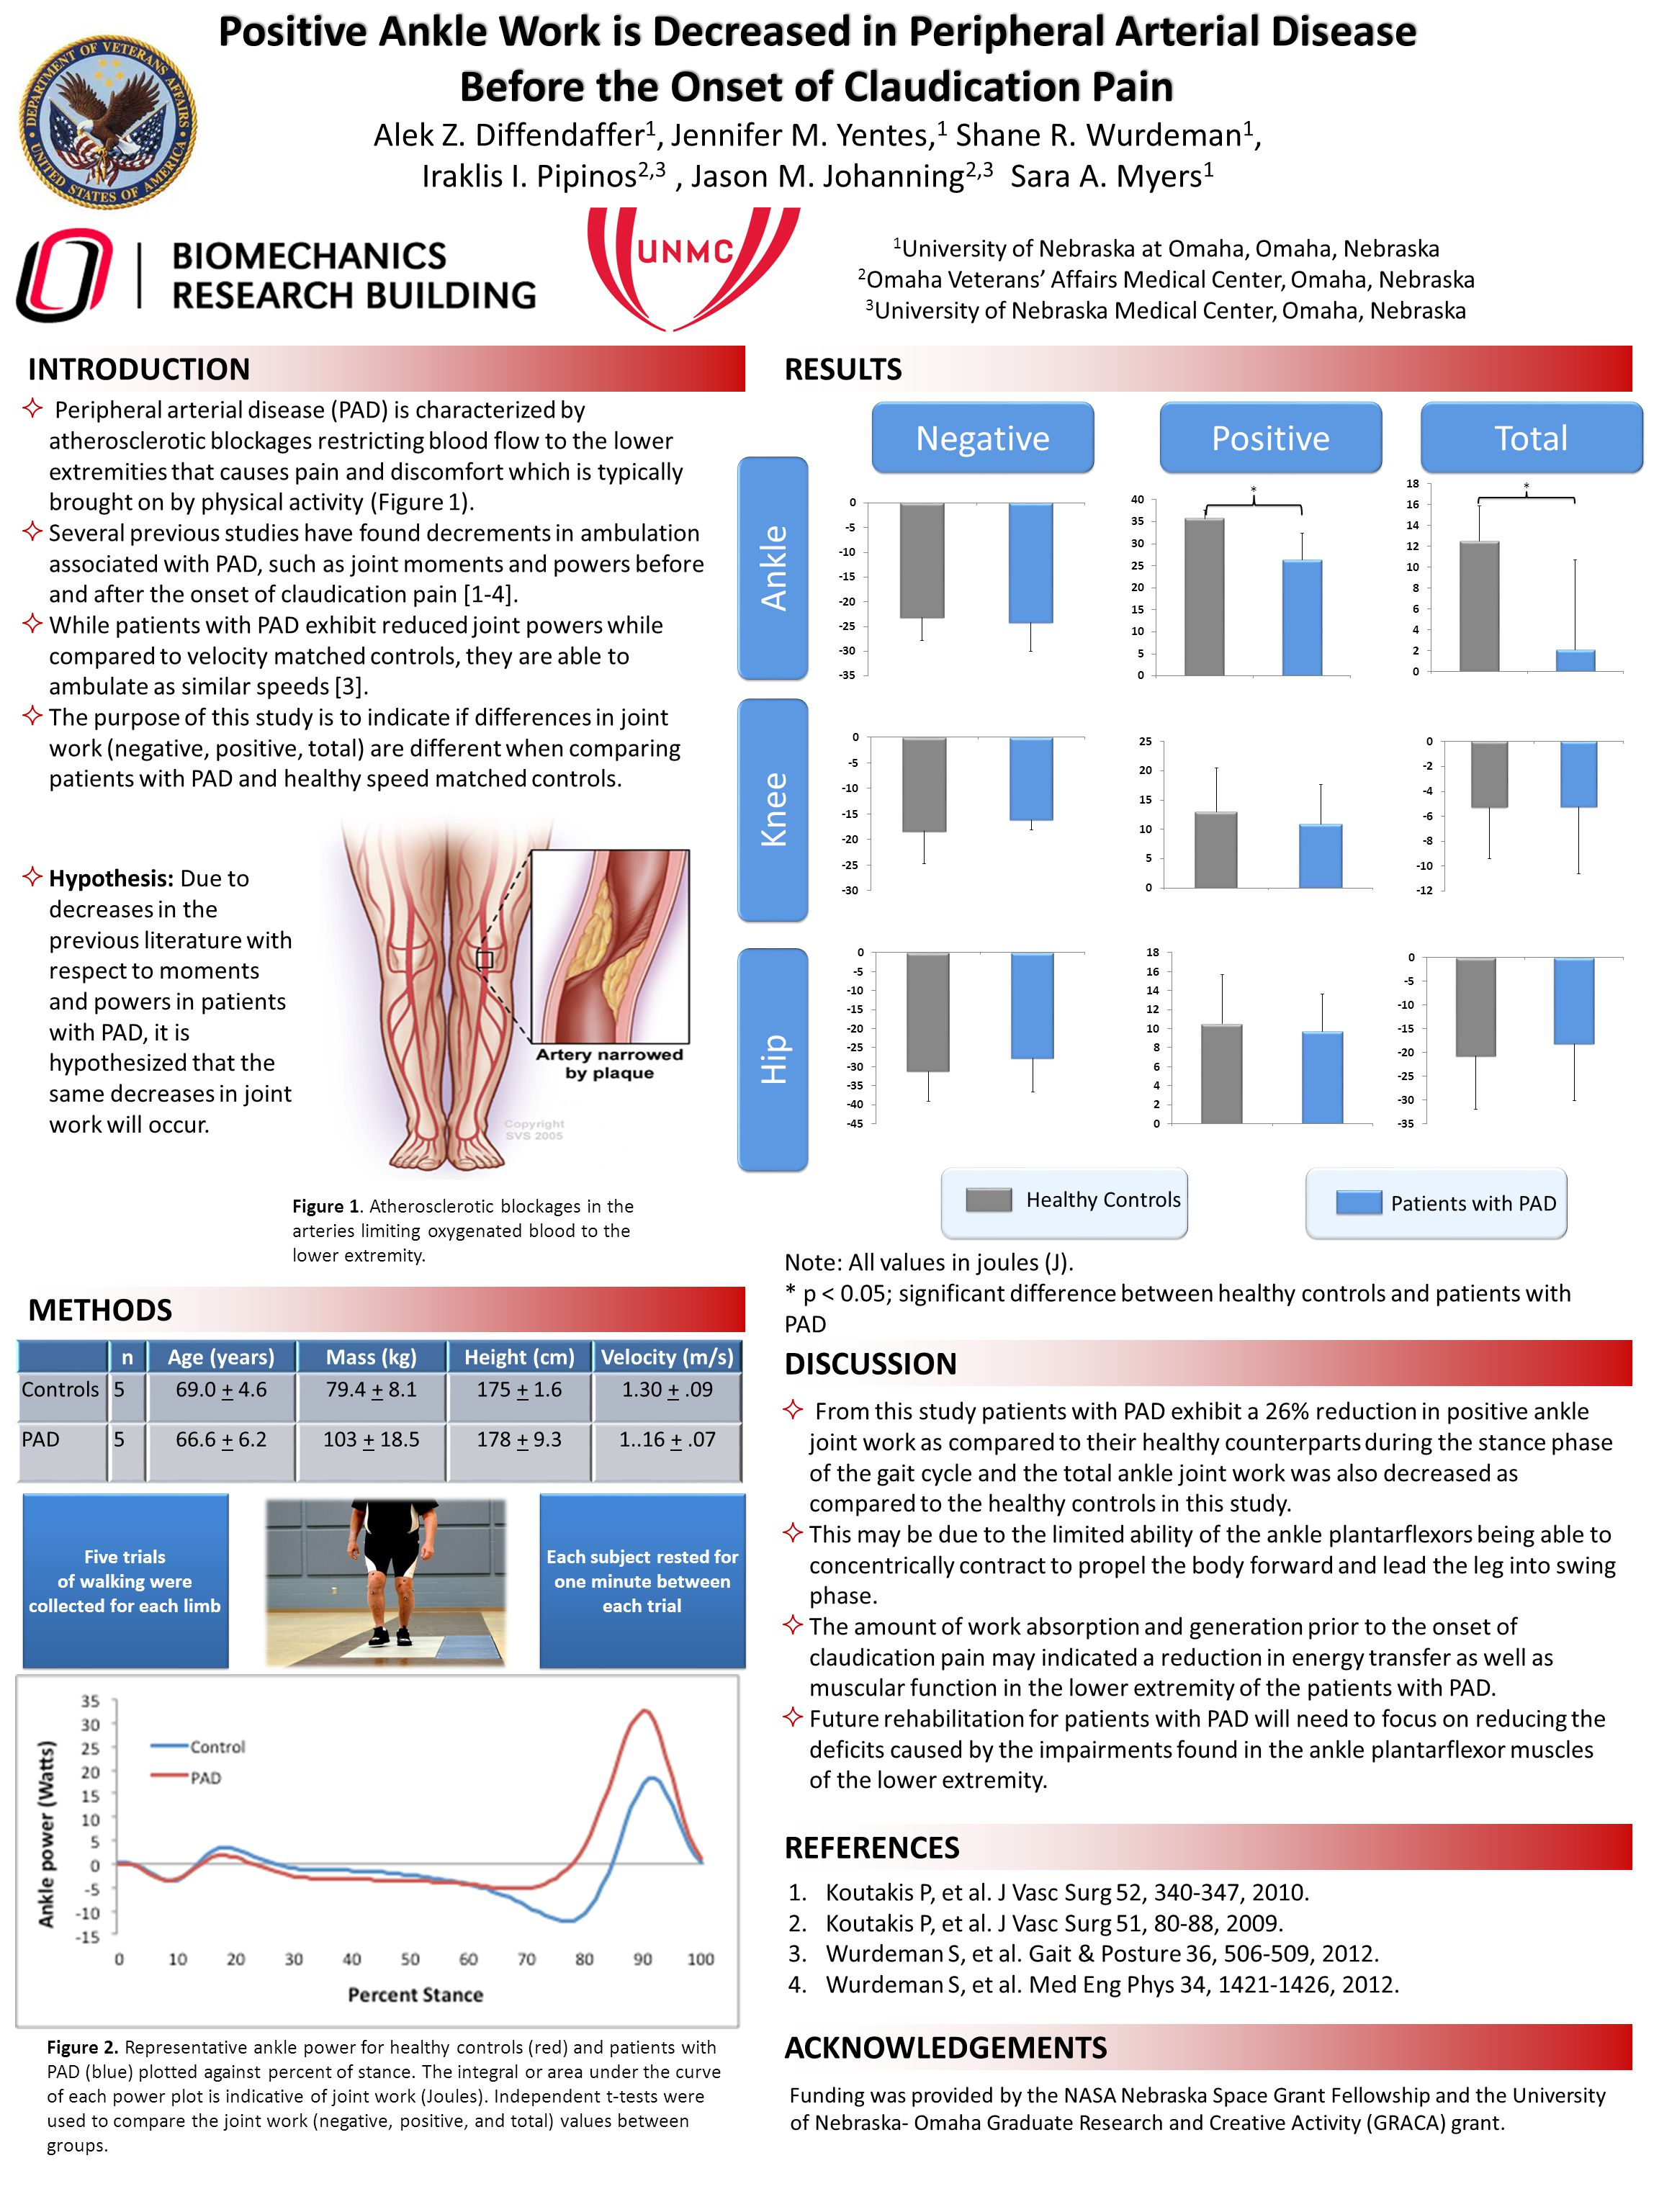 INTRODUCTION Positive Ankle Work is Decreased in Peripheral Arterial Disease Before the Onset of Claudication Pain Before the Onset of Claudication Pa